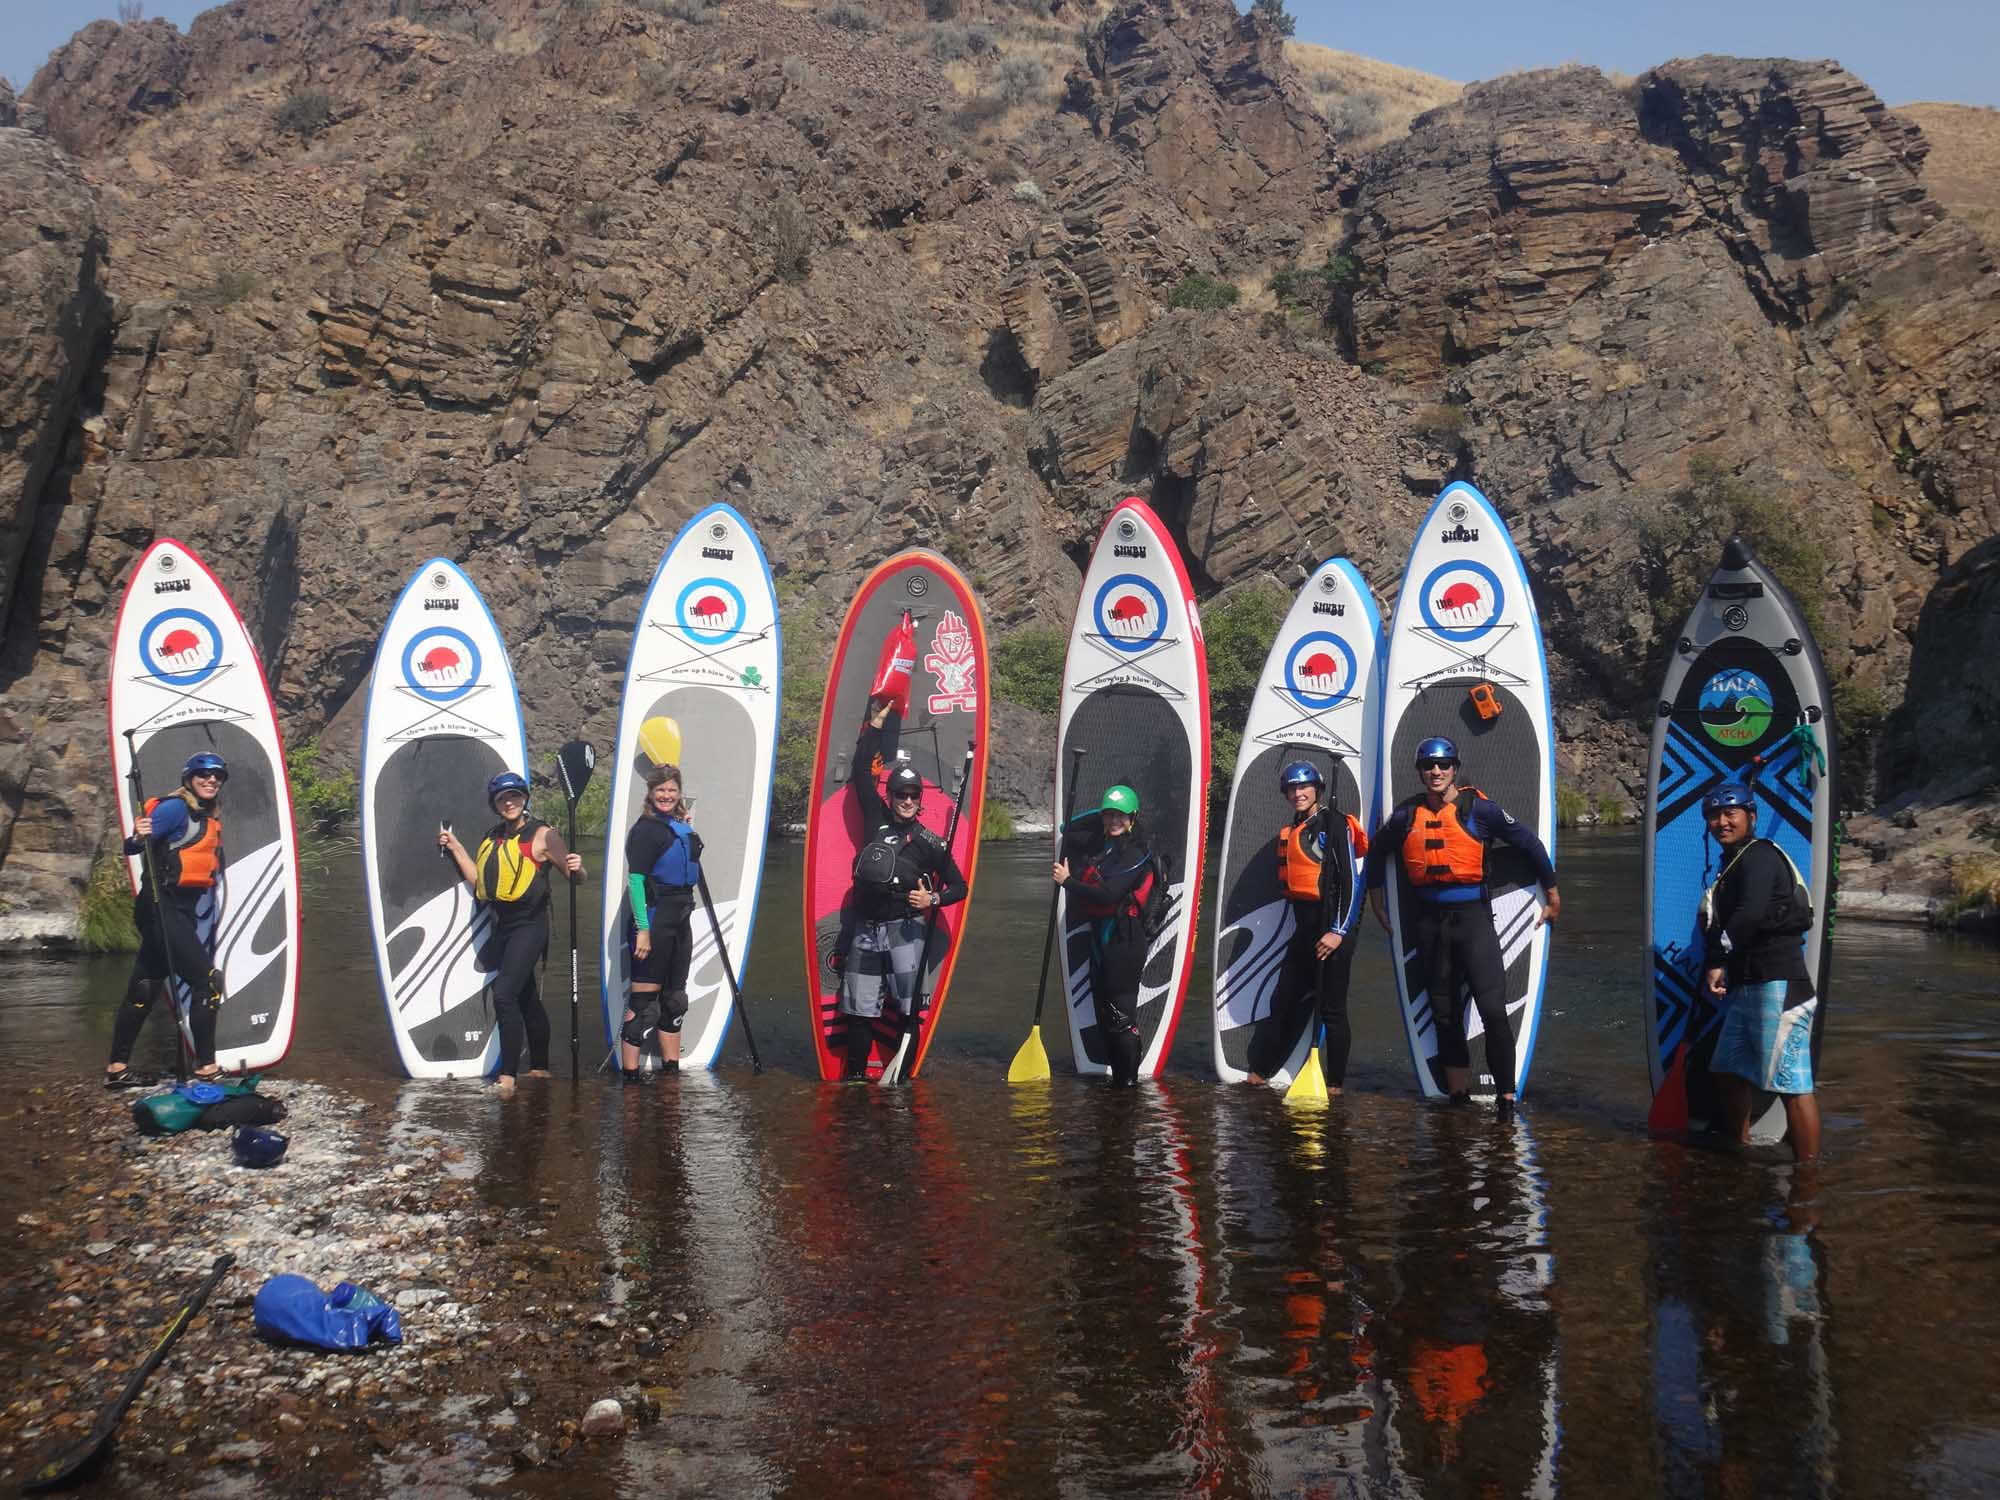 Stand up paddle boarding on the Deschutes River